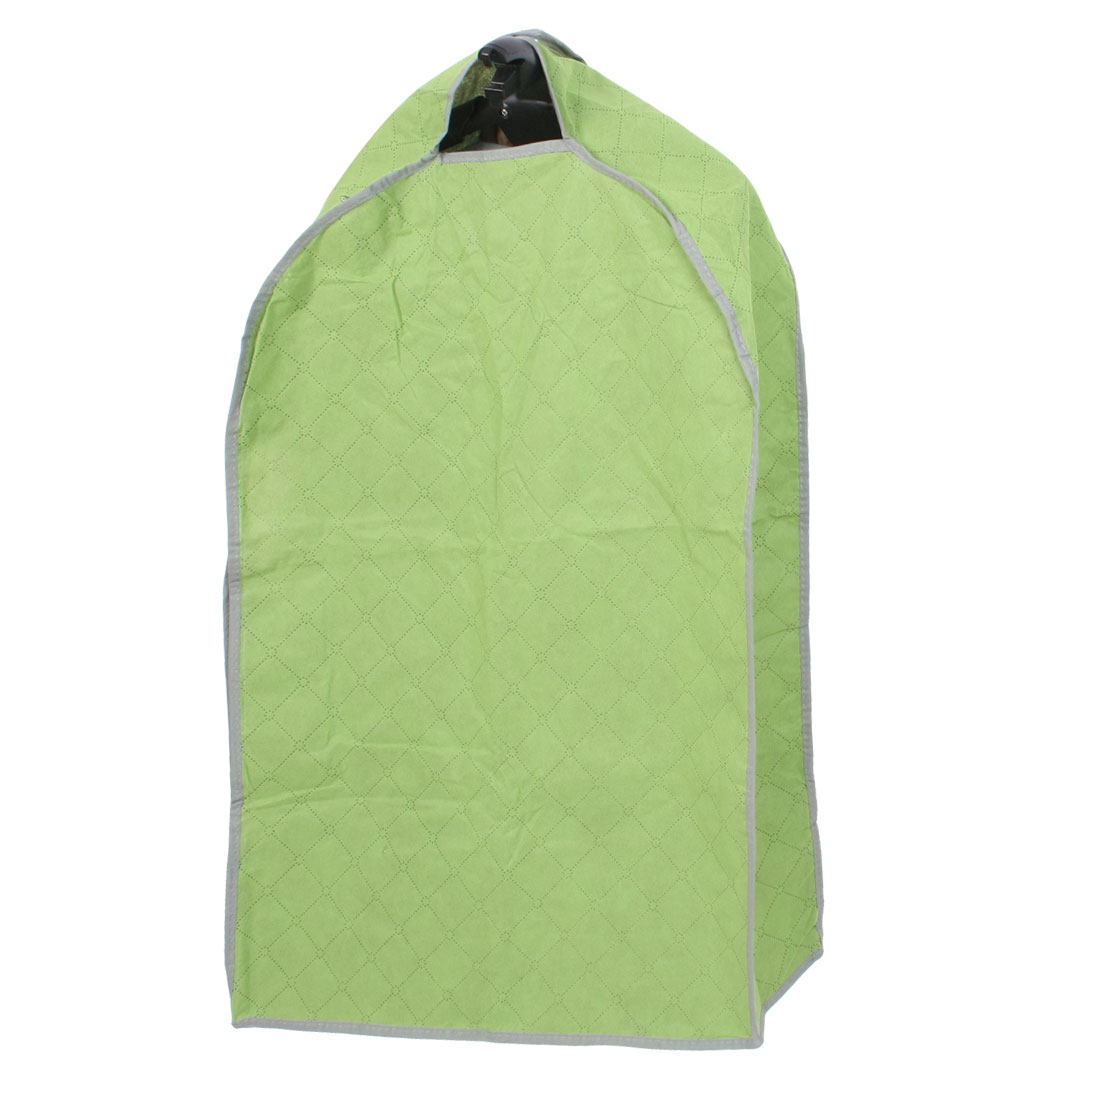 Green Checked Pattern Dustproof Dress Garment Suit Cover Protector Bag